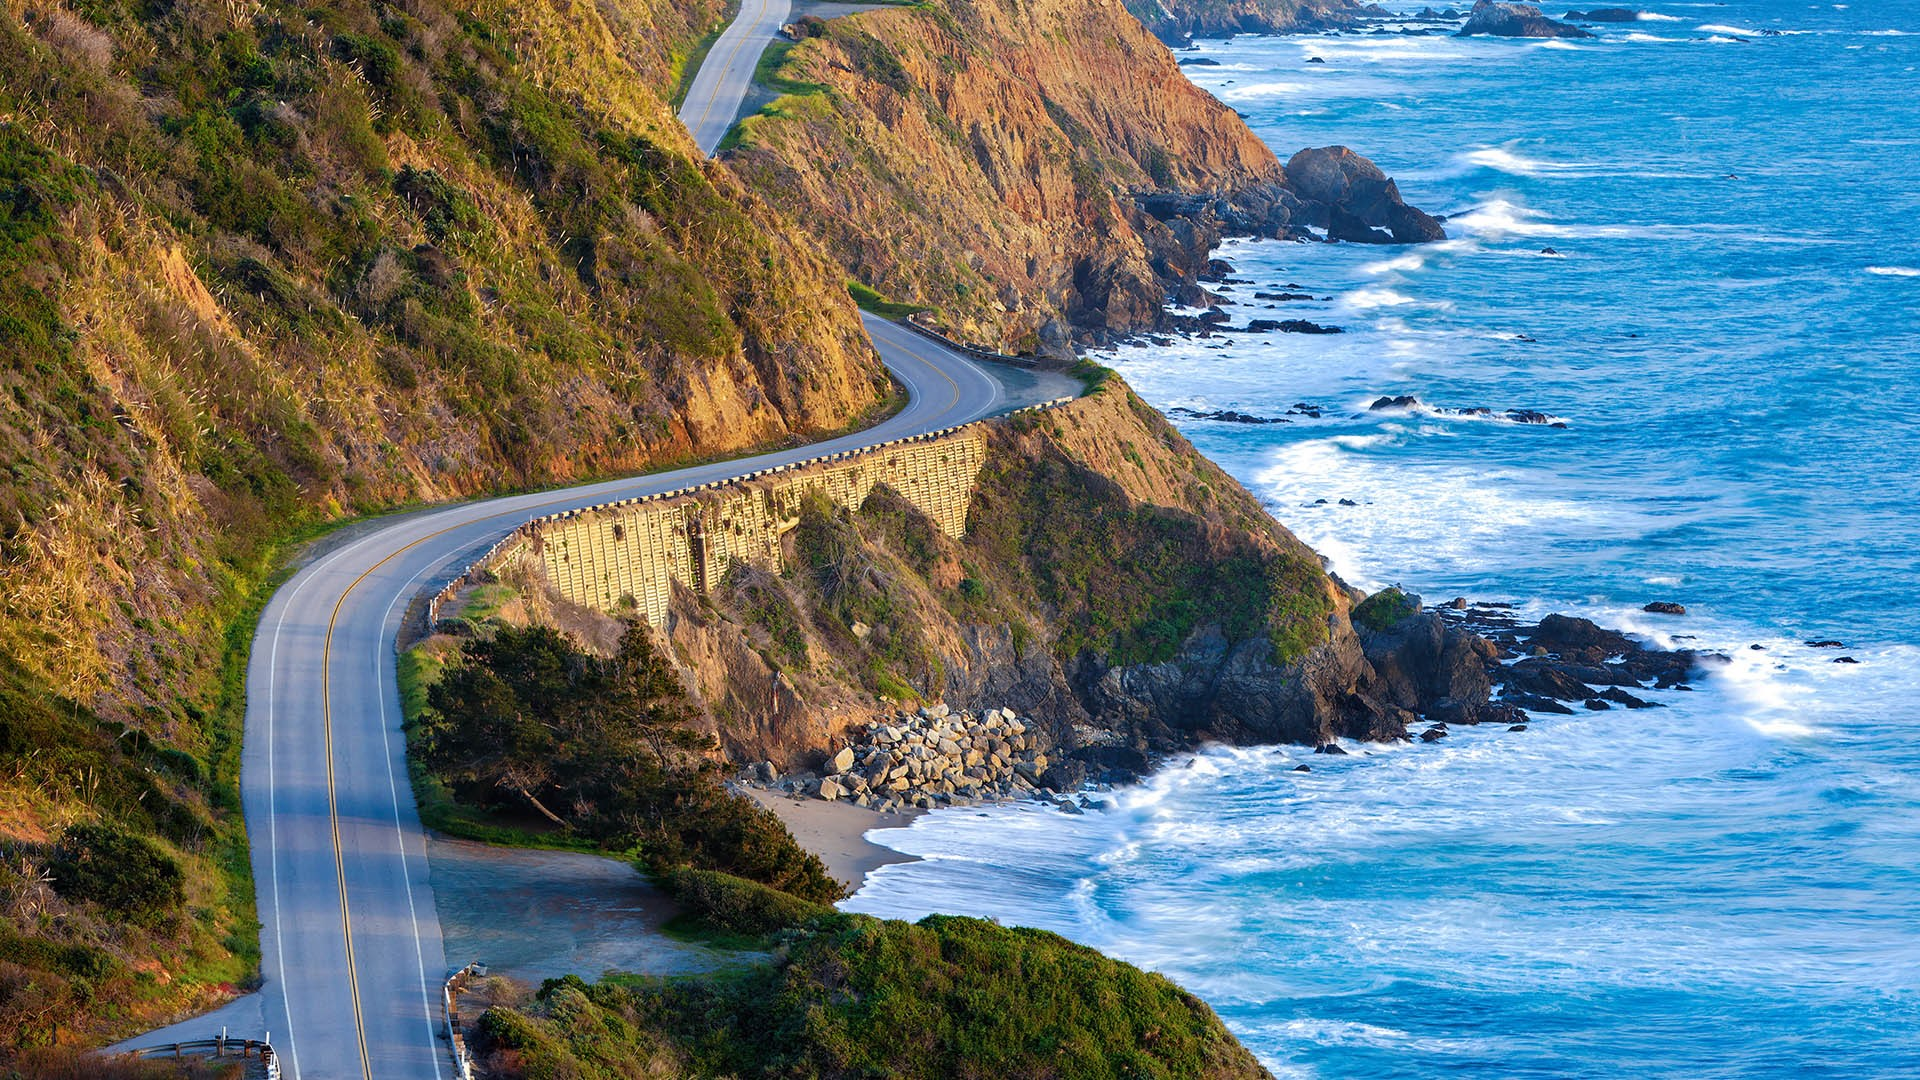 4. Pacific Coast Highway, USA